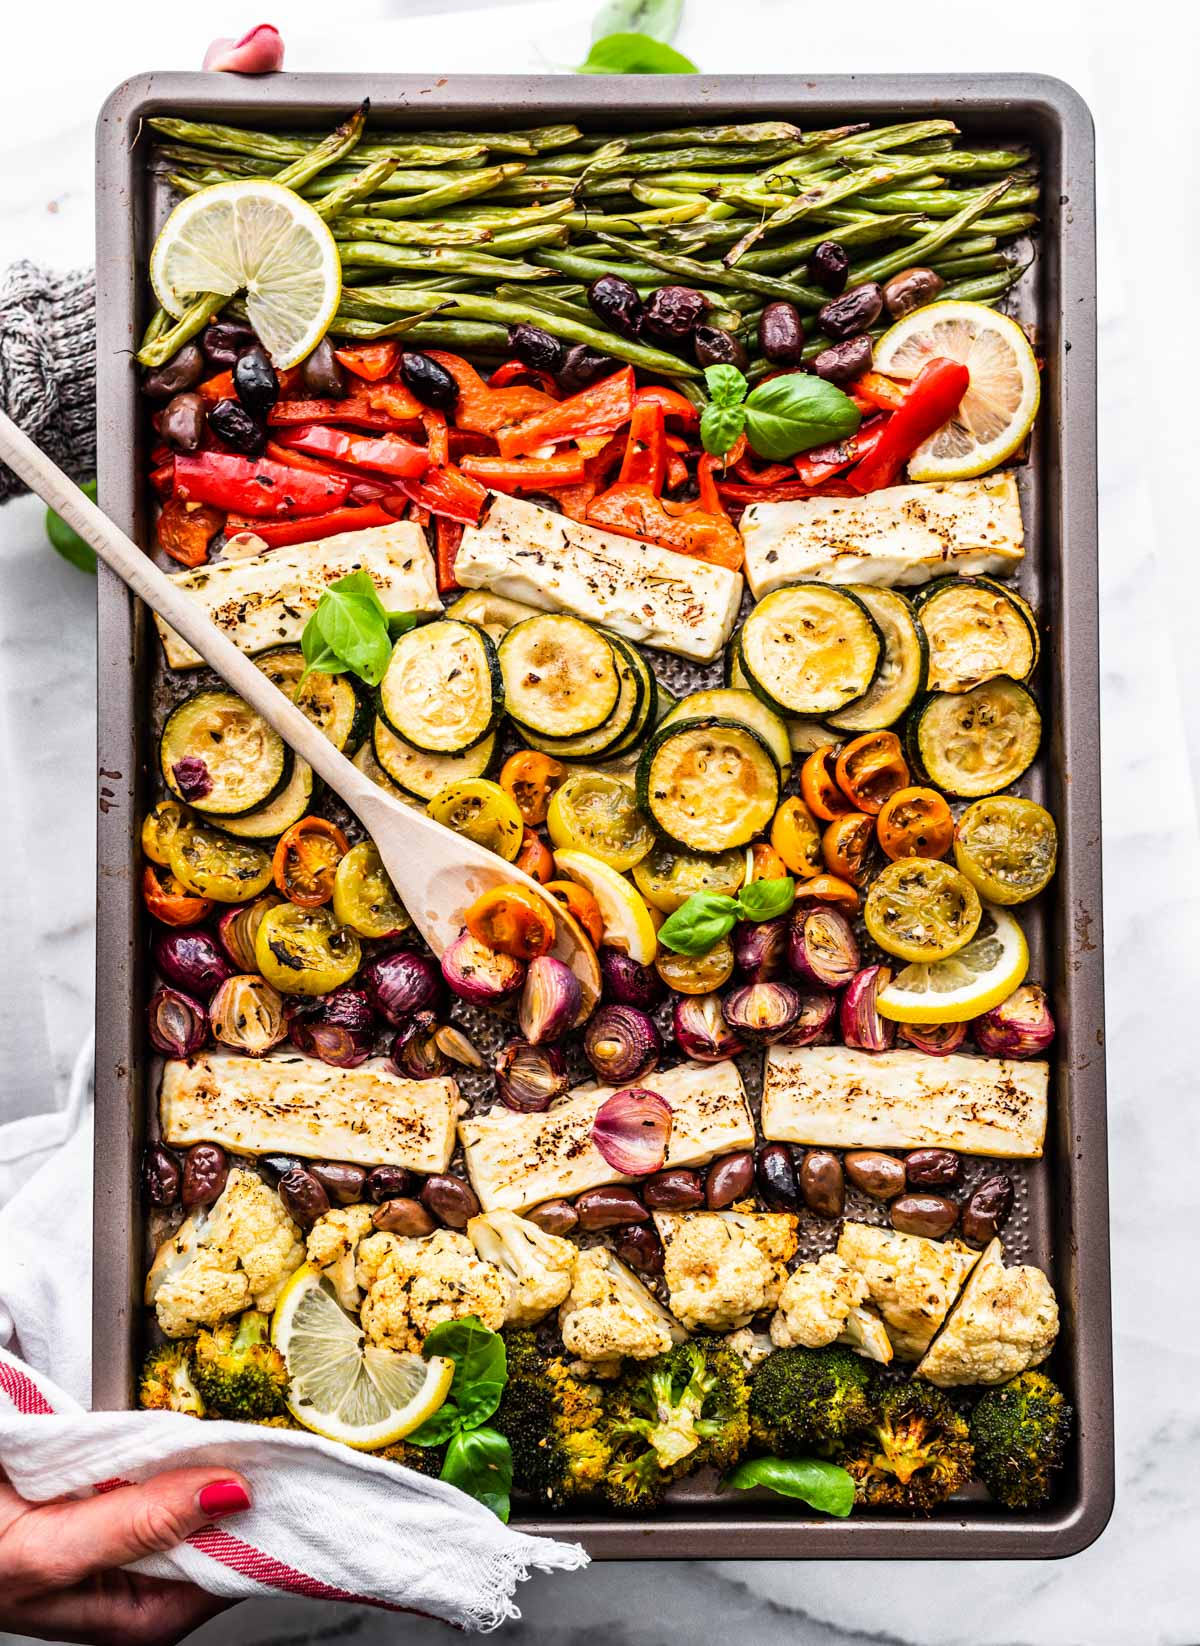 keto meal prep sheet pan dinner with marinated Greek vegetables and halloumi cheese